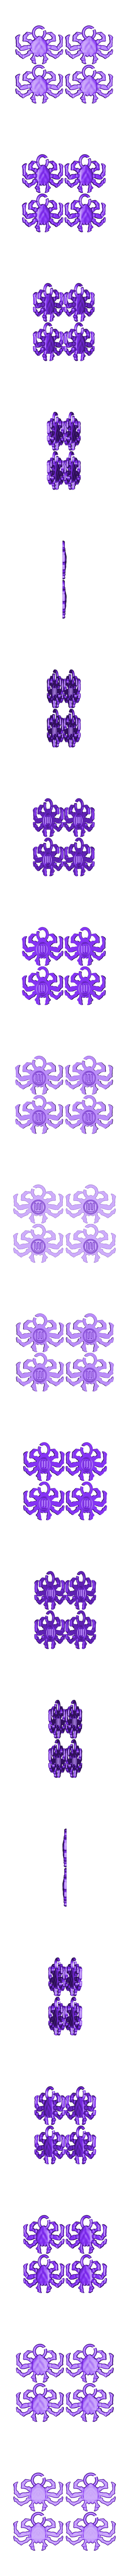 4SpiderCrabs.stl Télécharger fichier STL gratuit Sea Creatures! • Plan pour impression 3D, wally3Dprinter